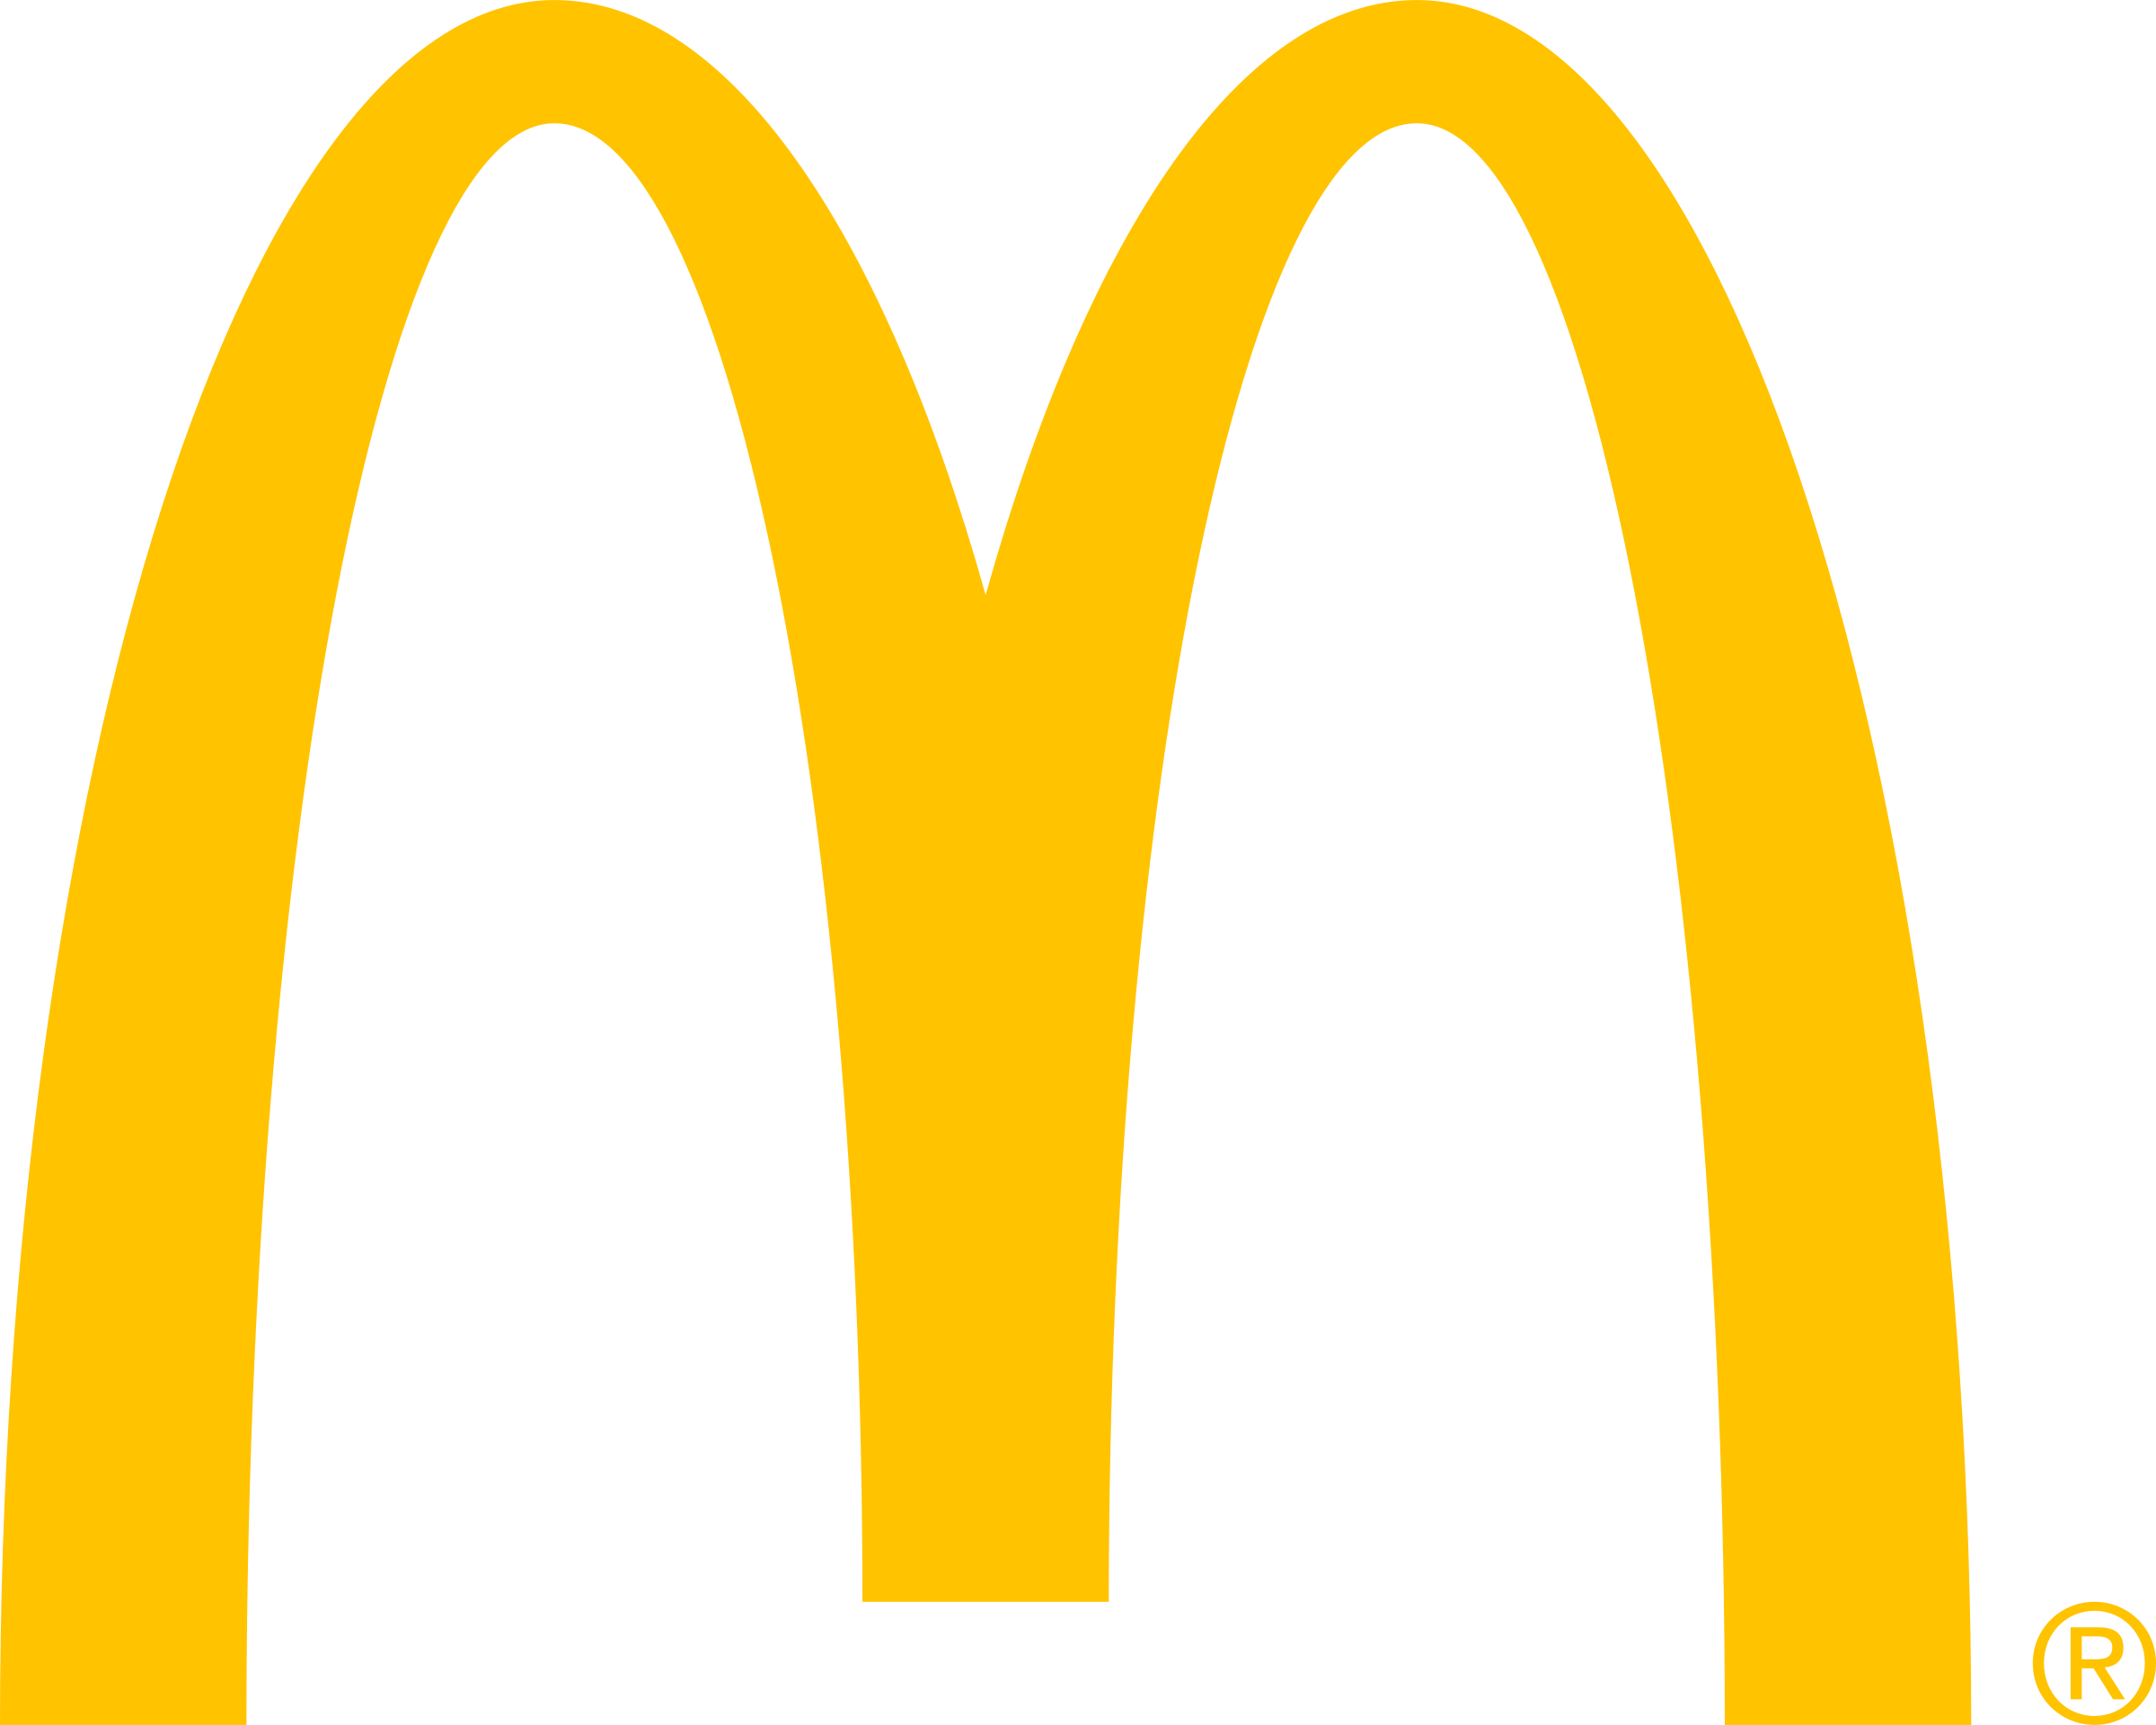 mcdonalds-15-logo-png-transparent